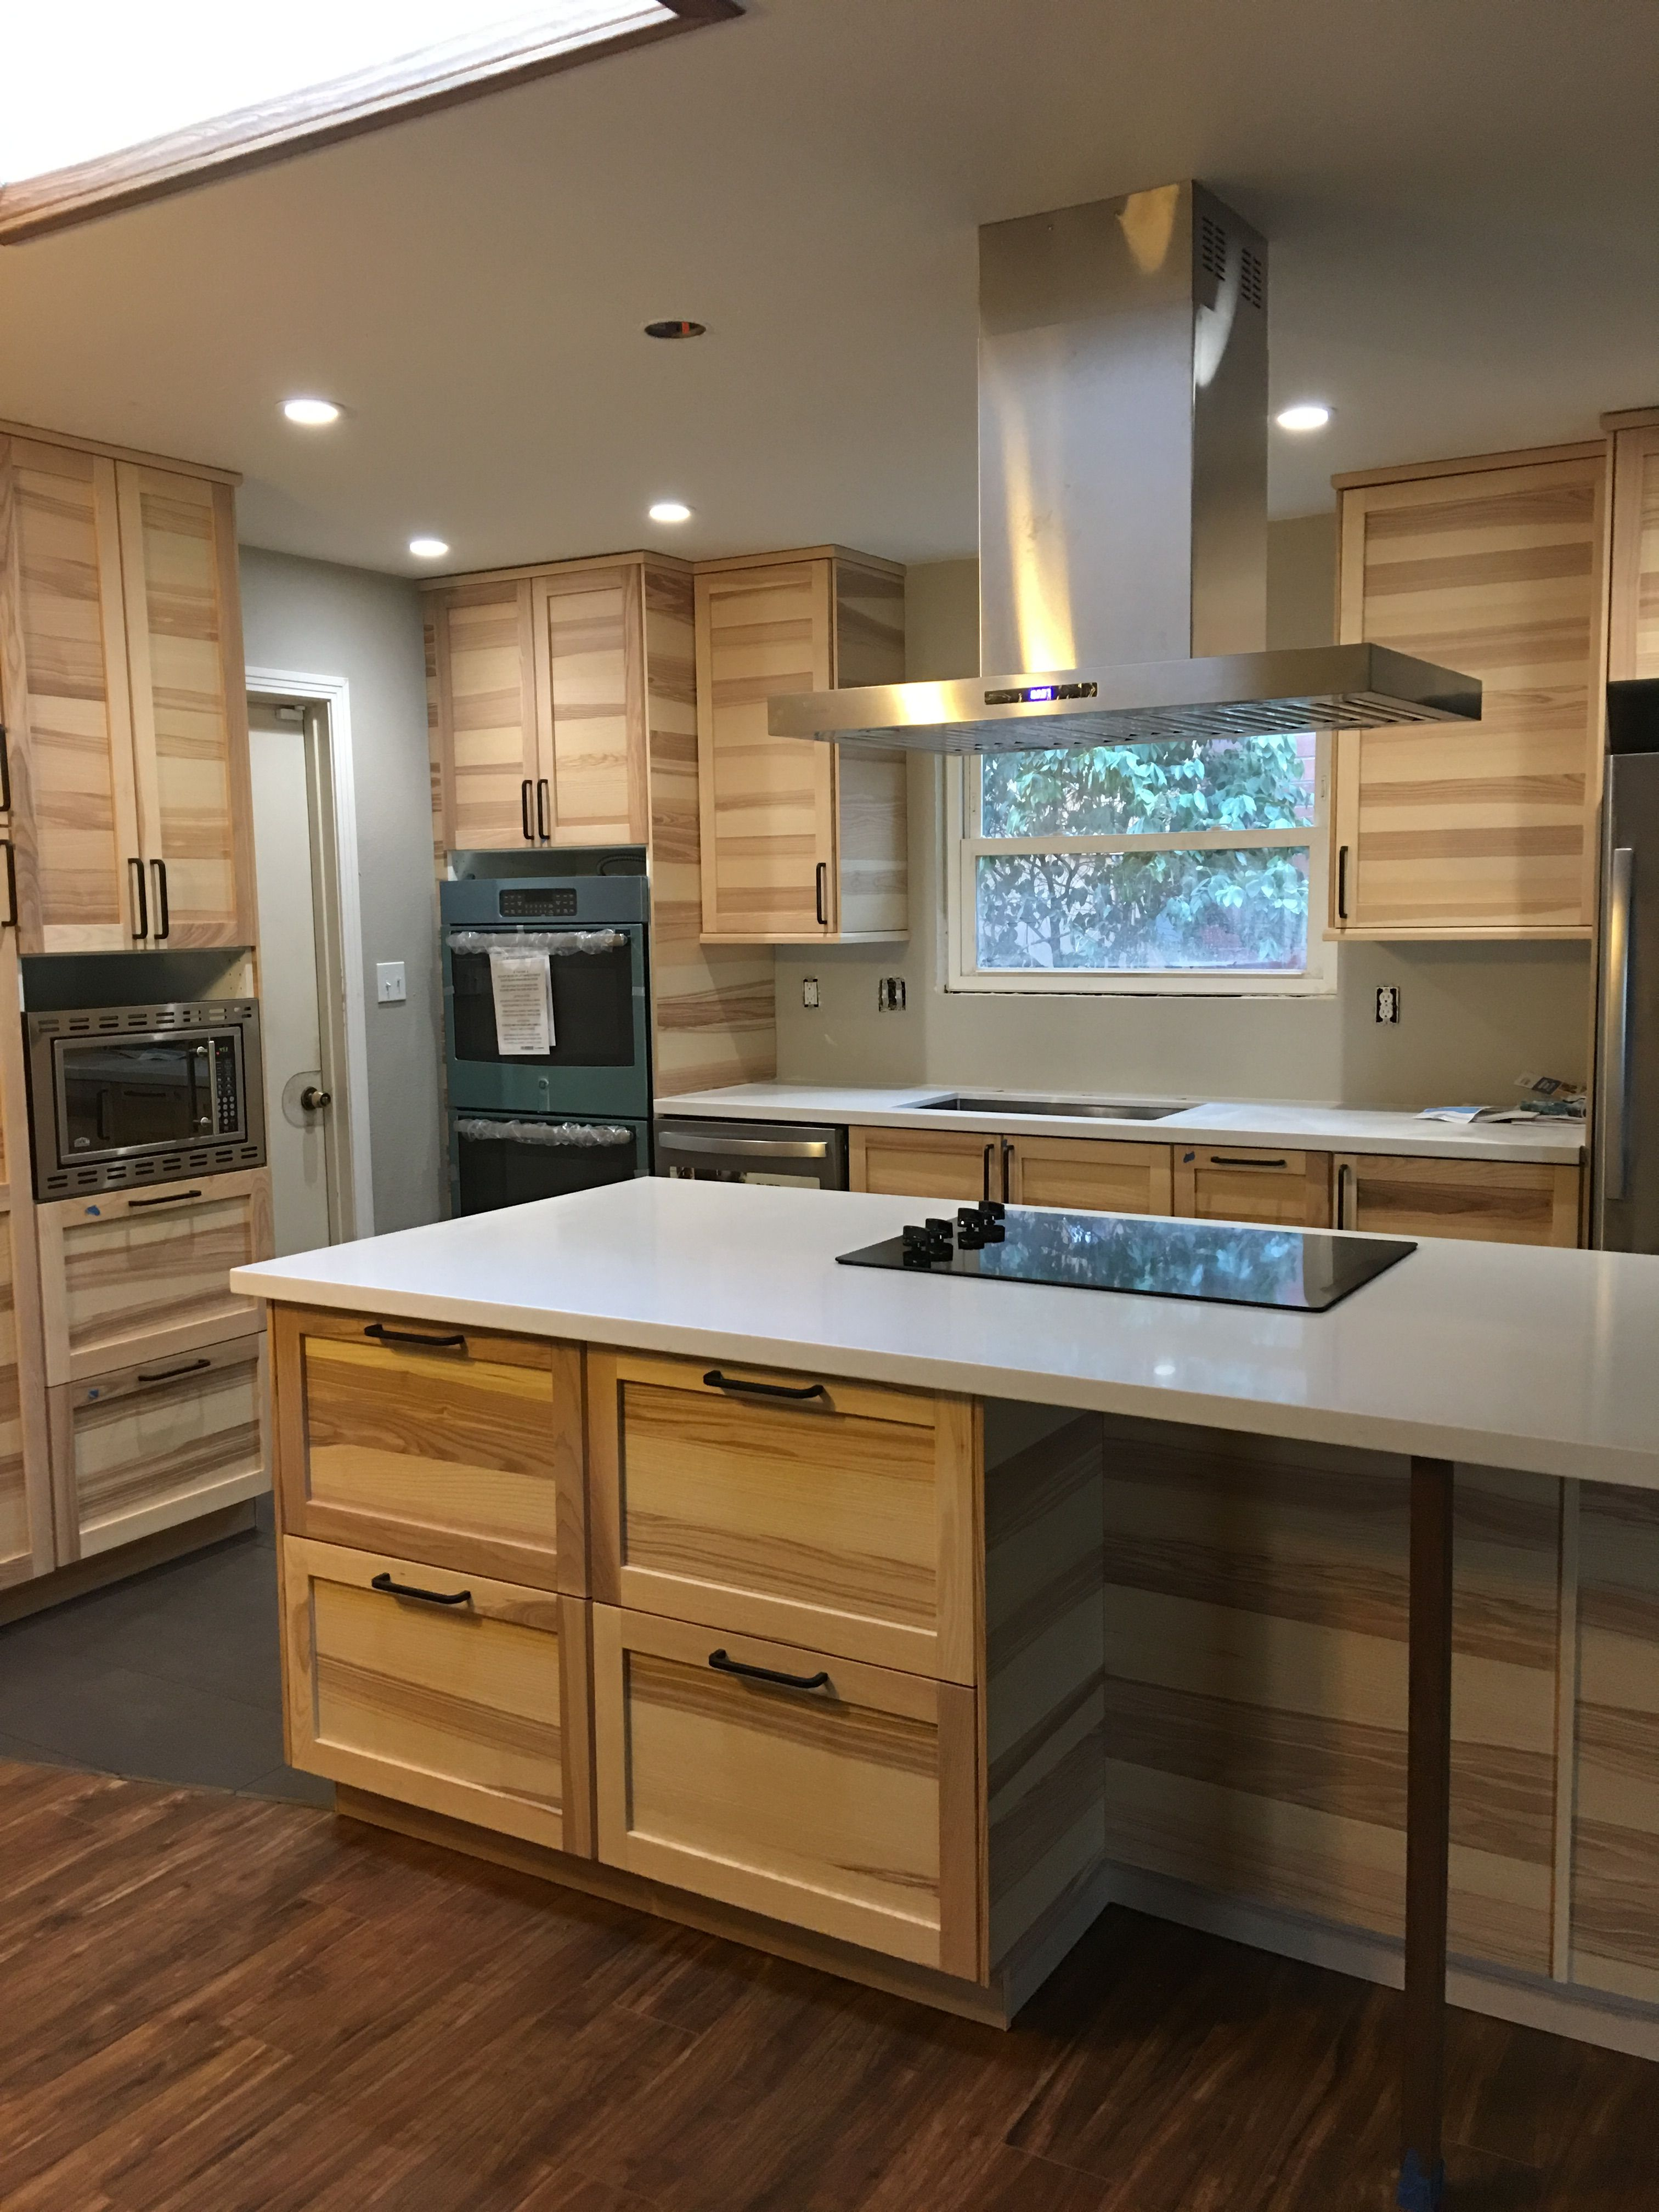 Ikea Torhamn Kitchen Kitchen Remodel Ideas In 2019 Diy